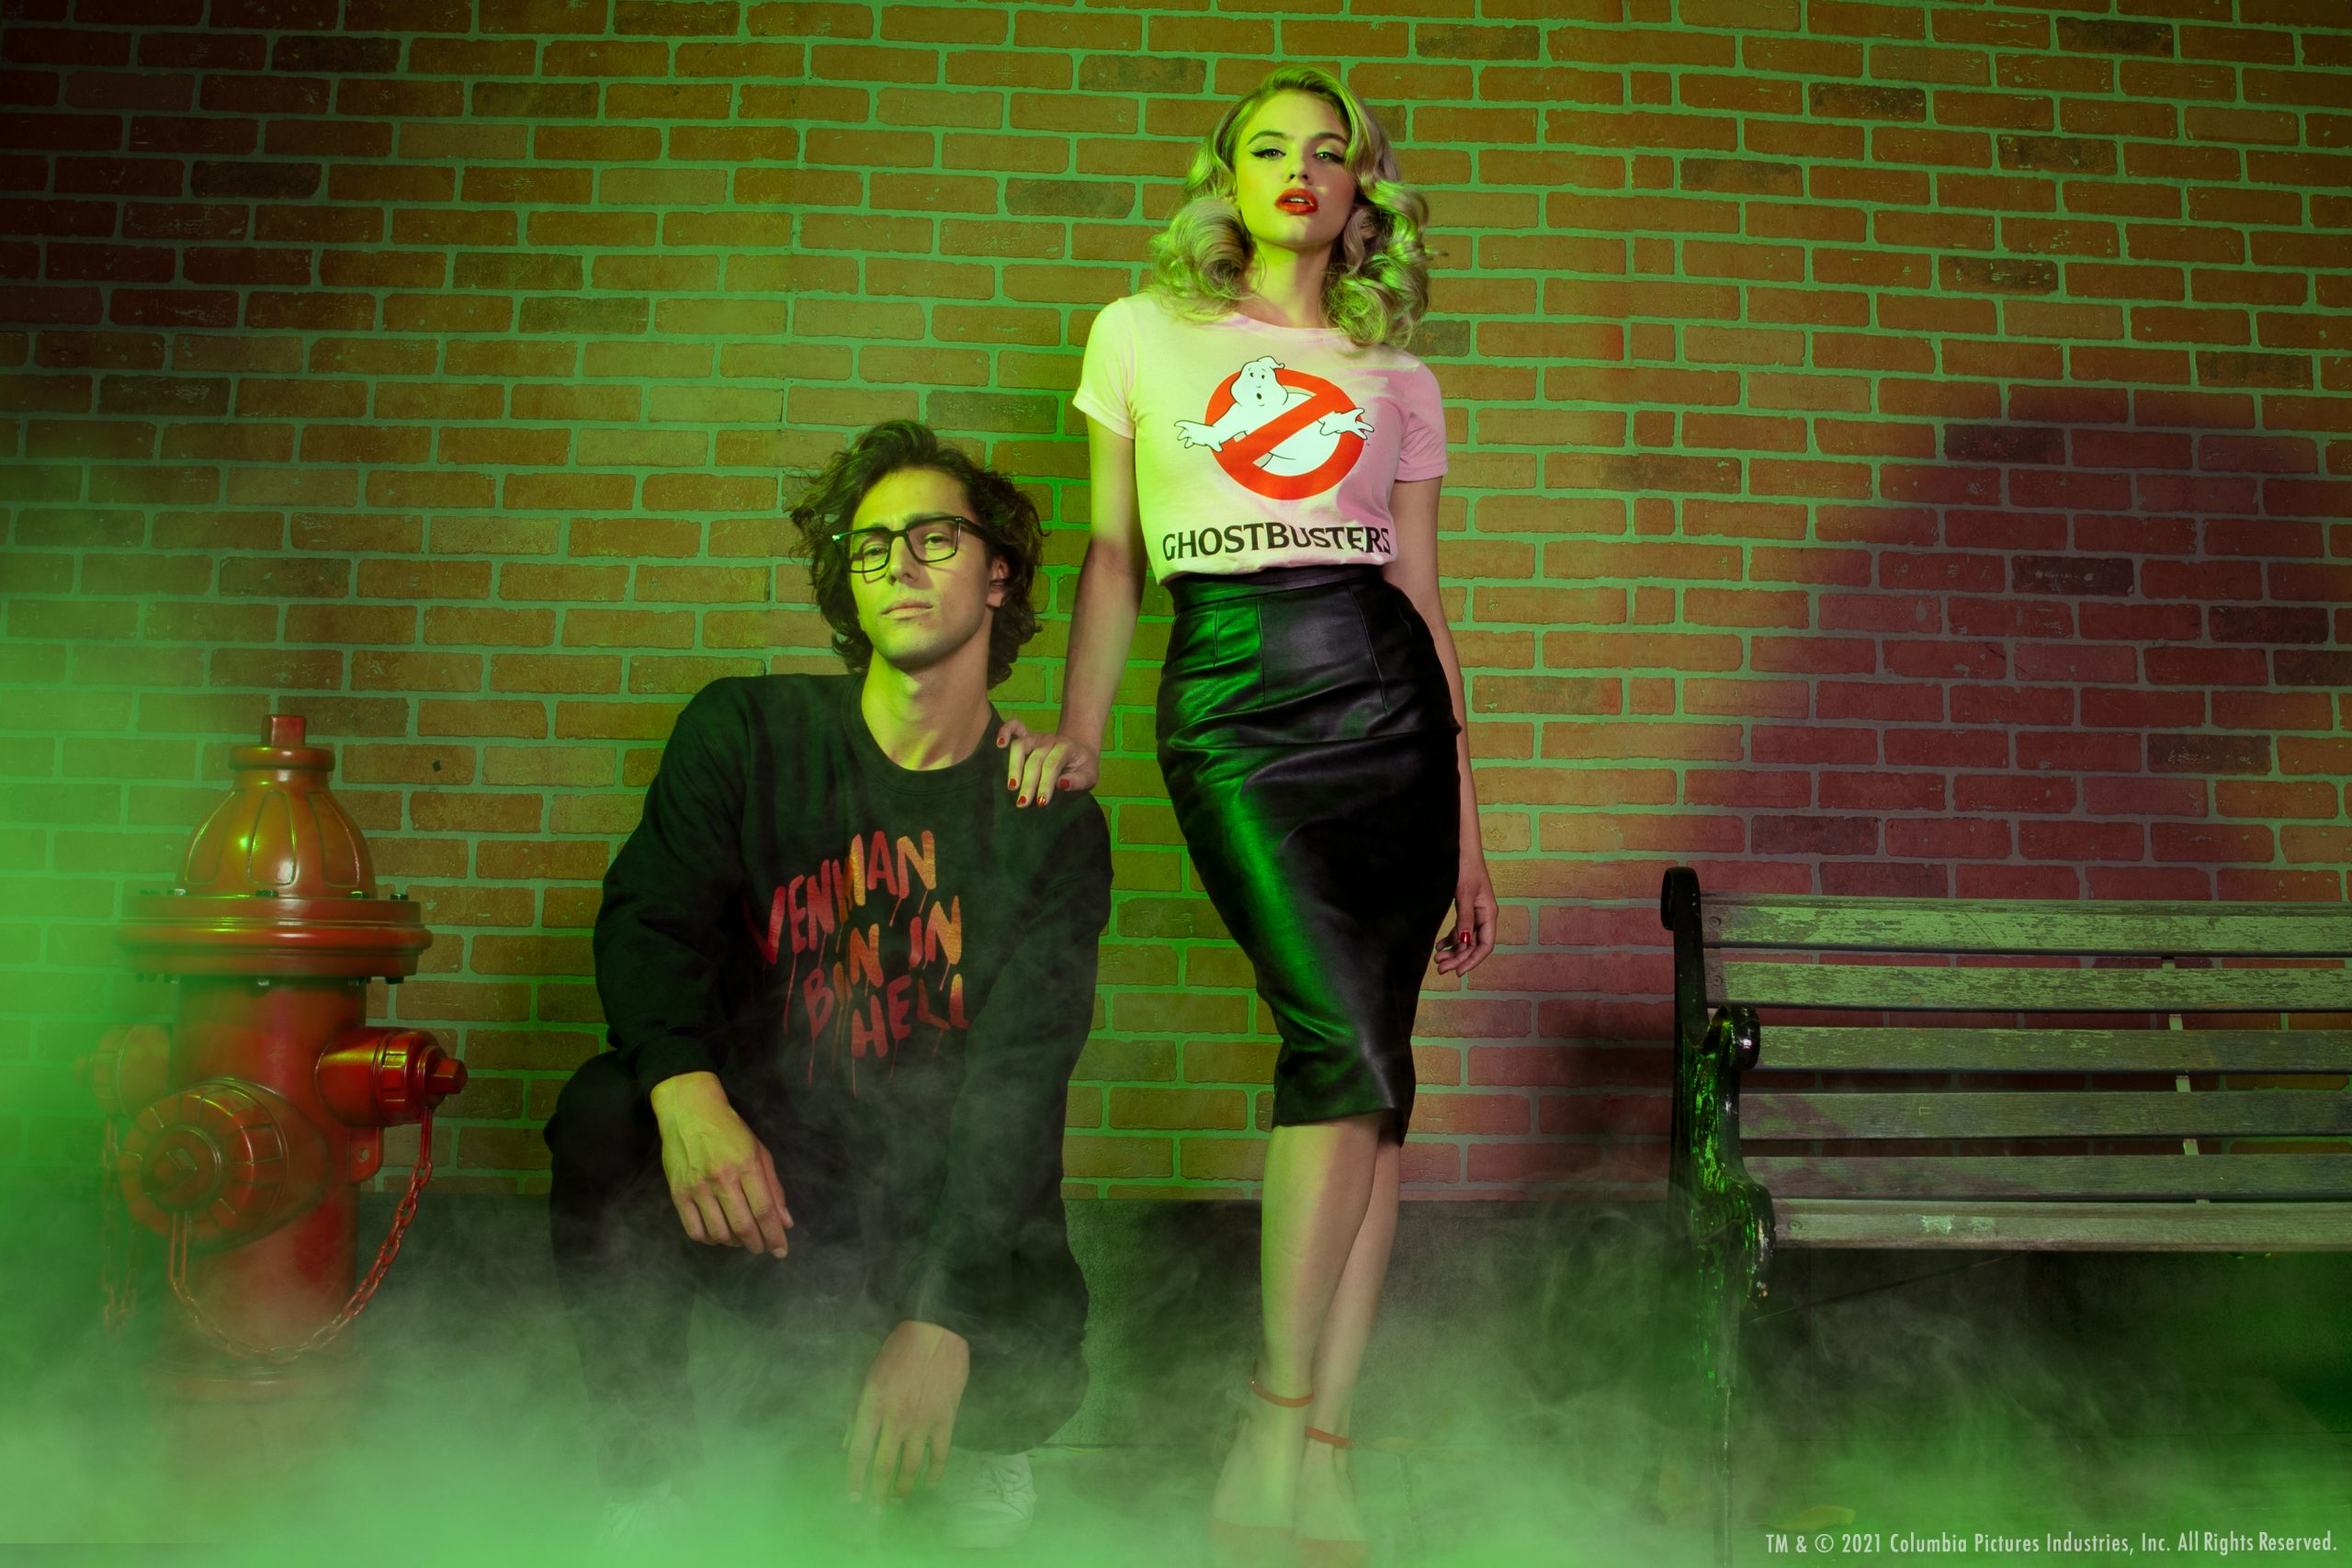 Vixen by Micheline Pitt Launches Licensed GHOSTBUSTERS Collection